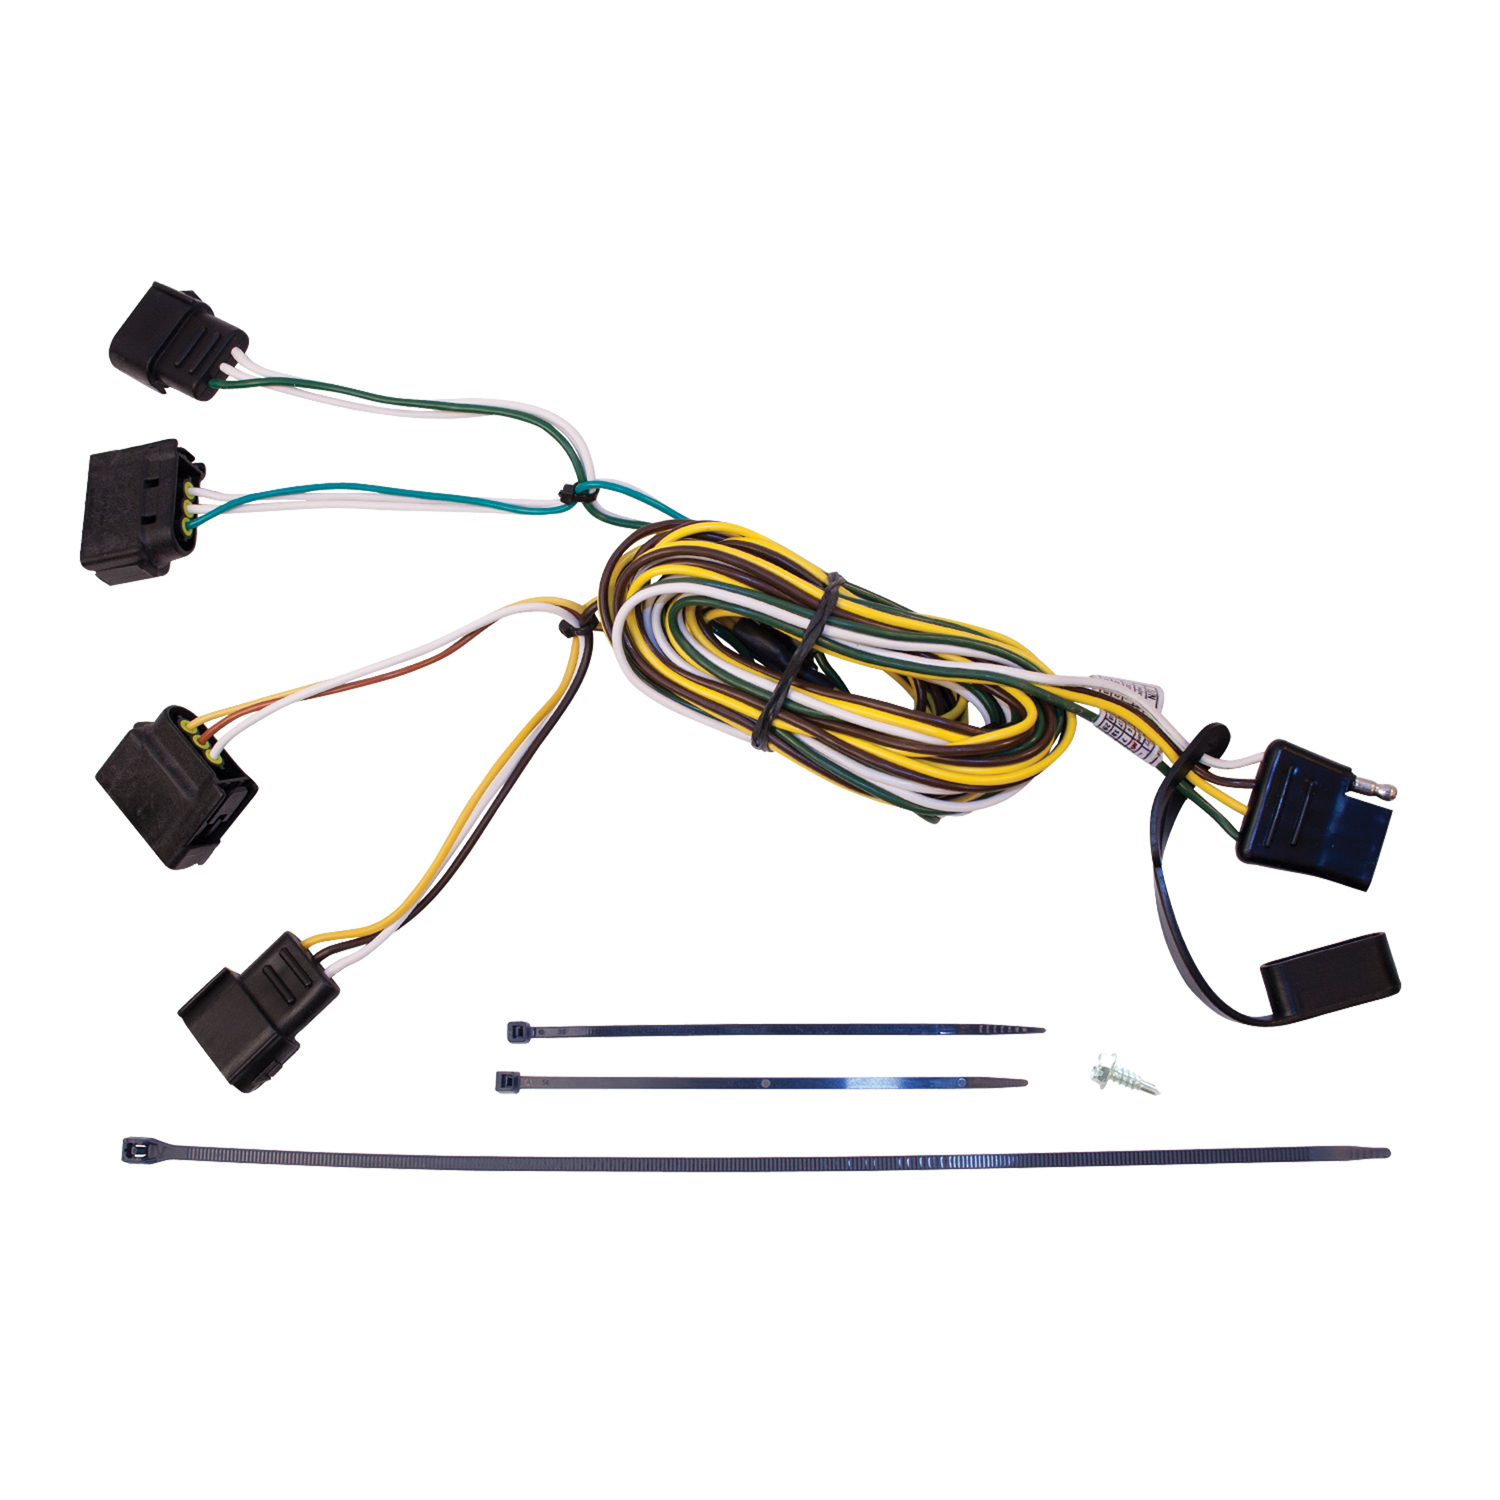 65 62080 Westin Automotive Trailer Wiring Connector T For Kit 62016